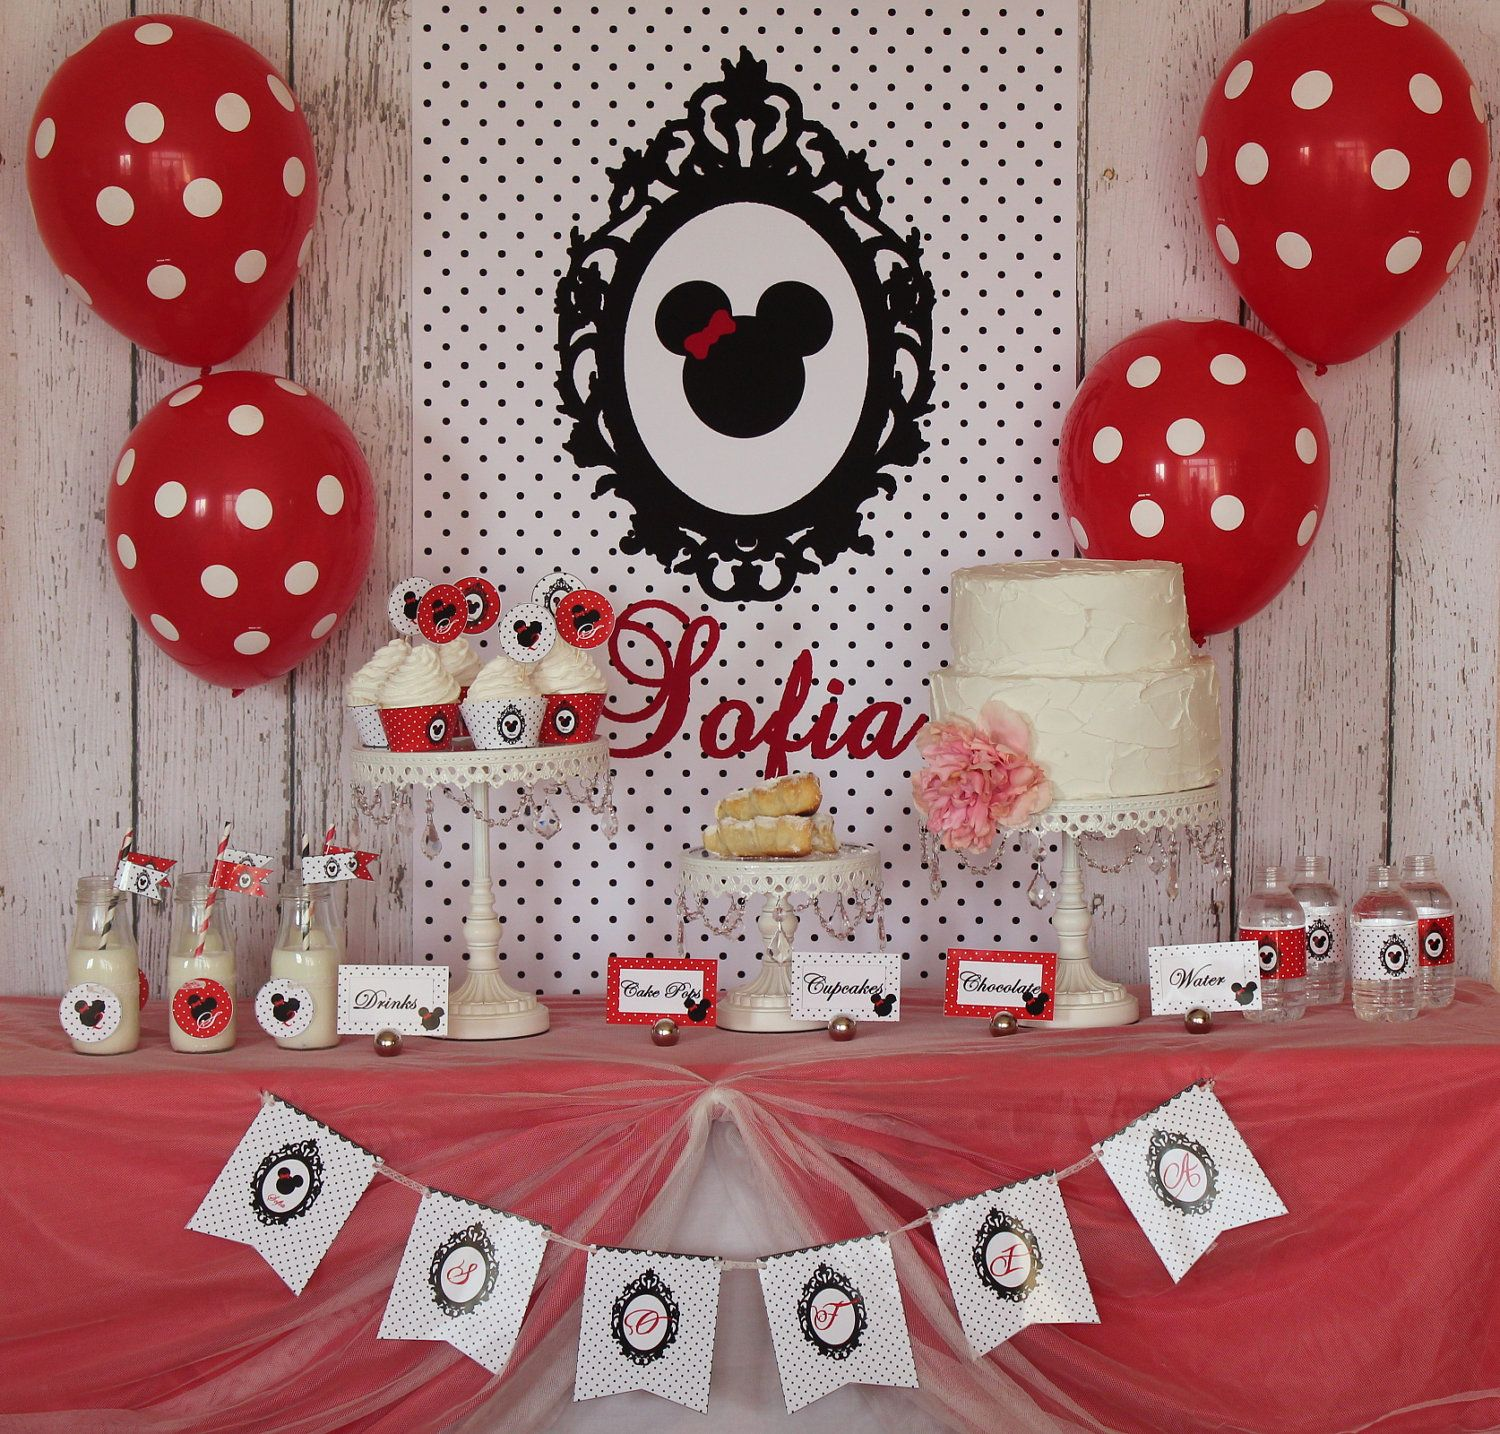 pin by petra kotnik brombauer on kind mini mouse party pinterest minnie mouse mouse. Black Bedroom Furniture Sets. Home Design Ideas